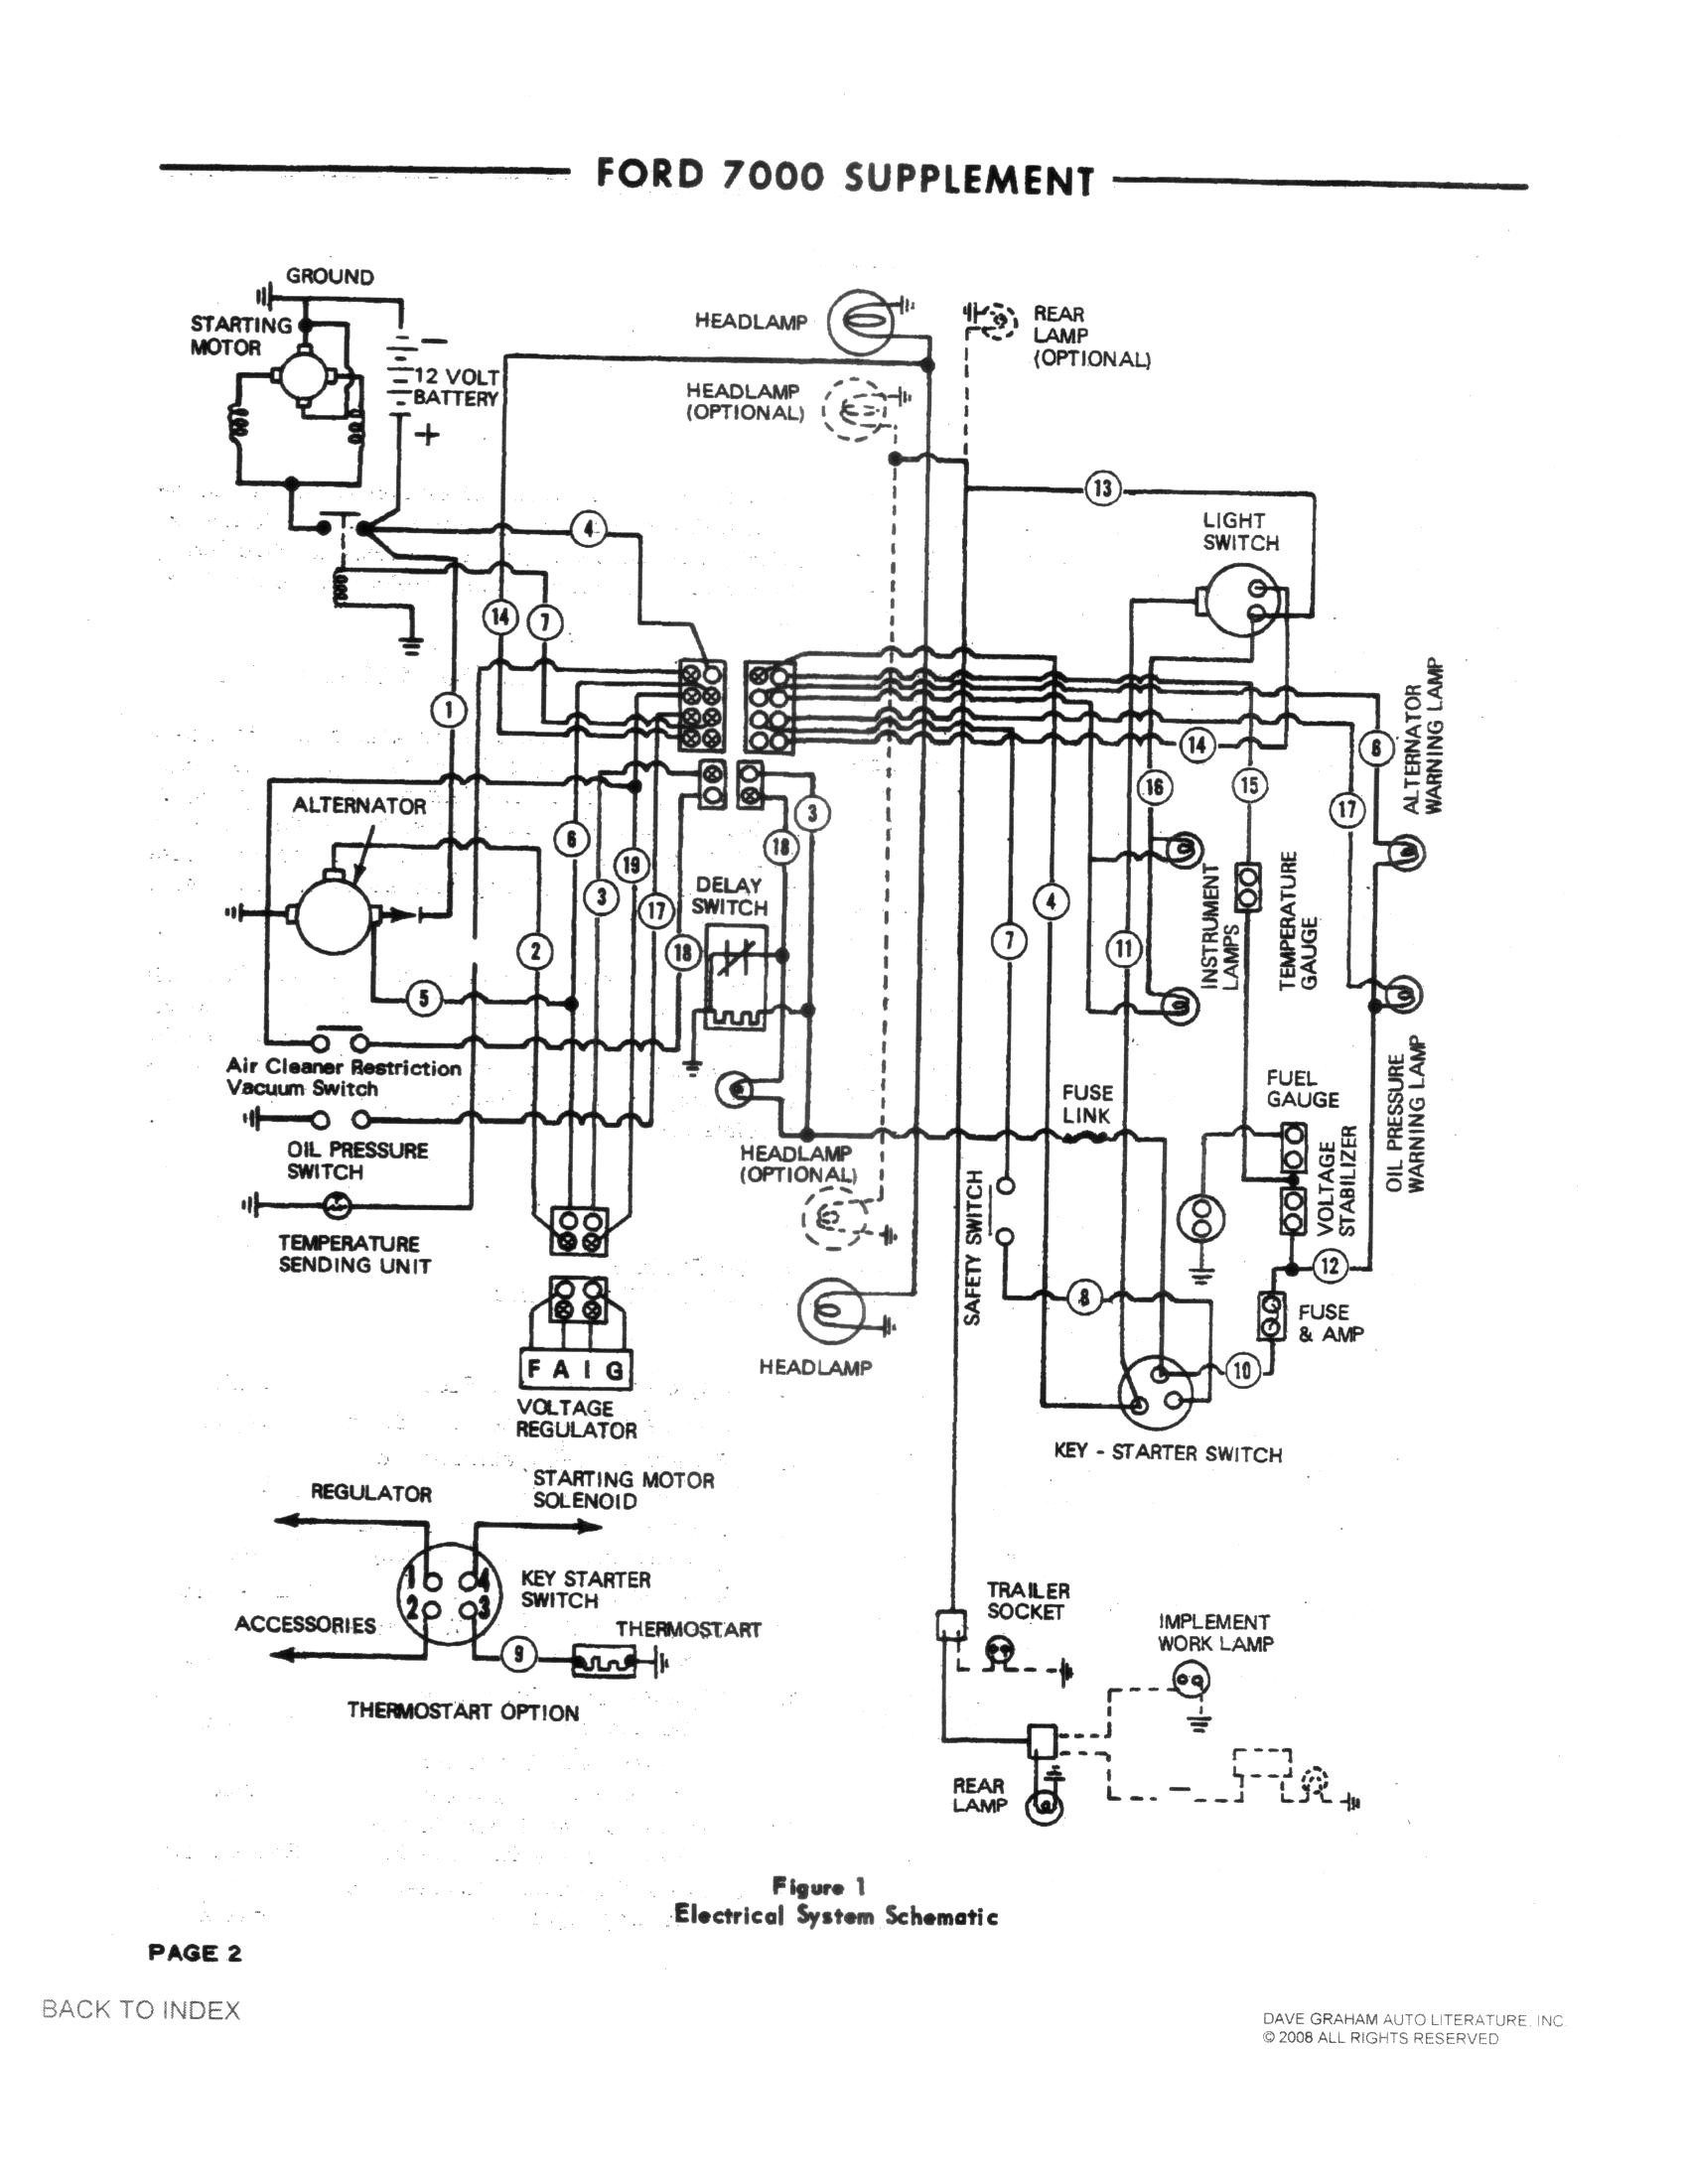 ford 3600 tractor parts diagram my wiring diagram rh detoxicrecenze com 1953 Ford Tractor Wiring Diagram 4600 Ford Tractor Wiring Diagram